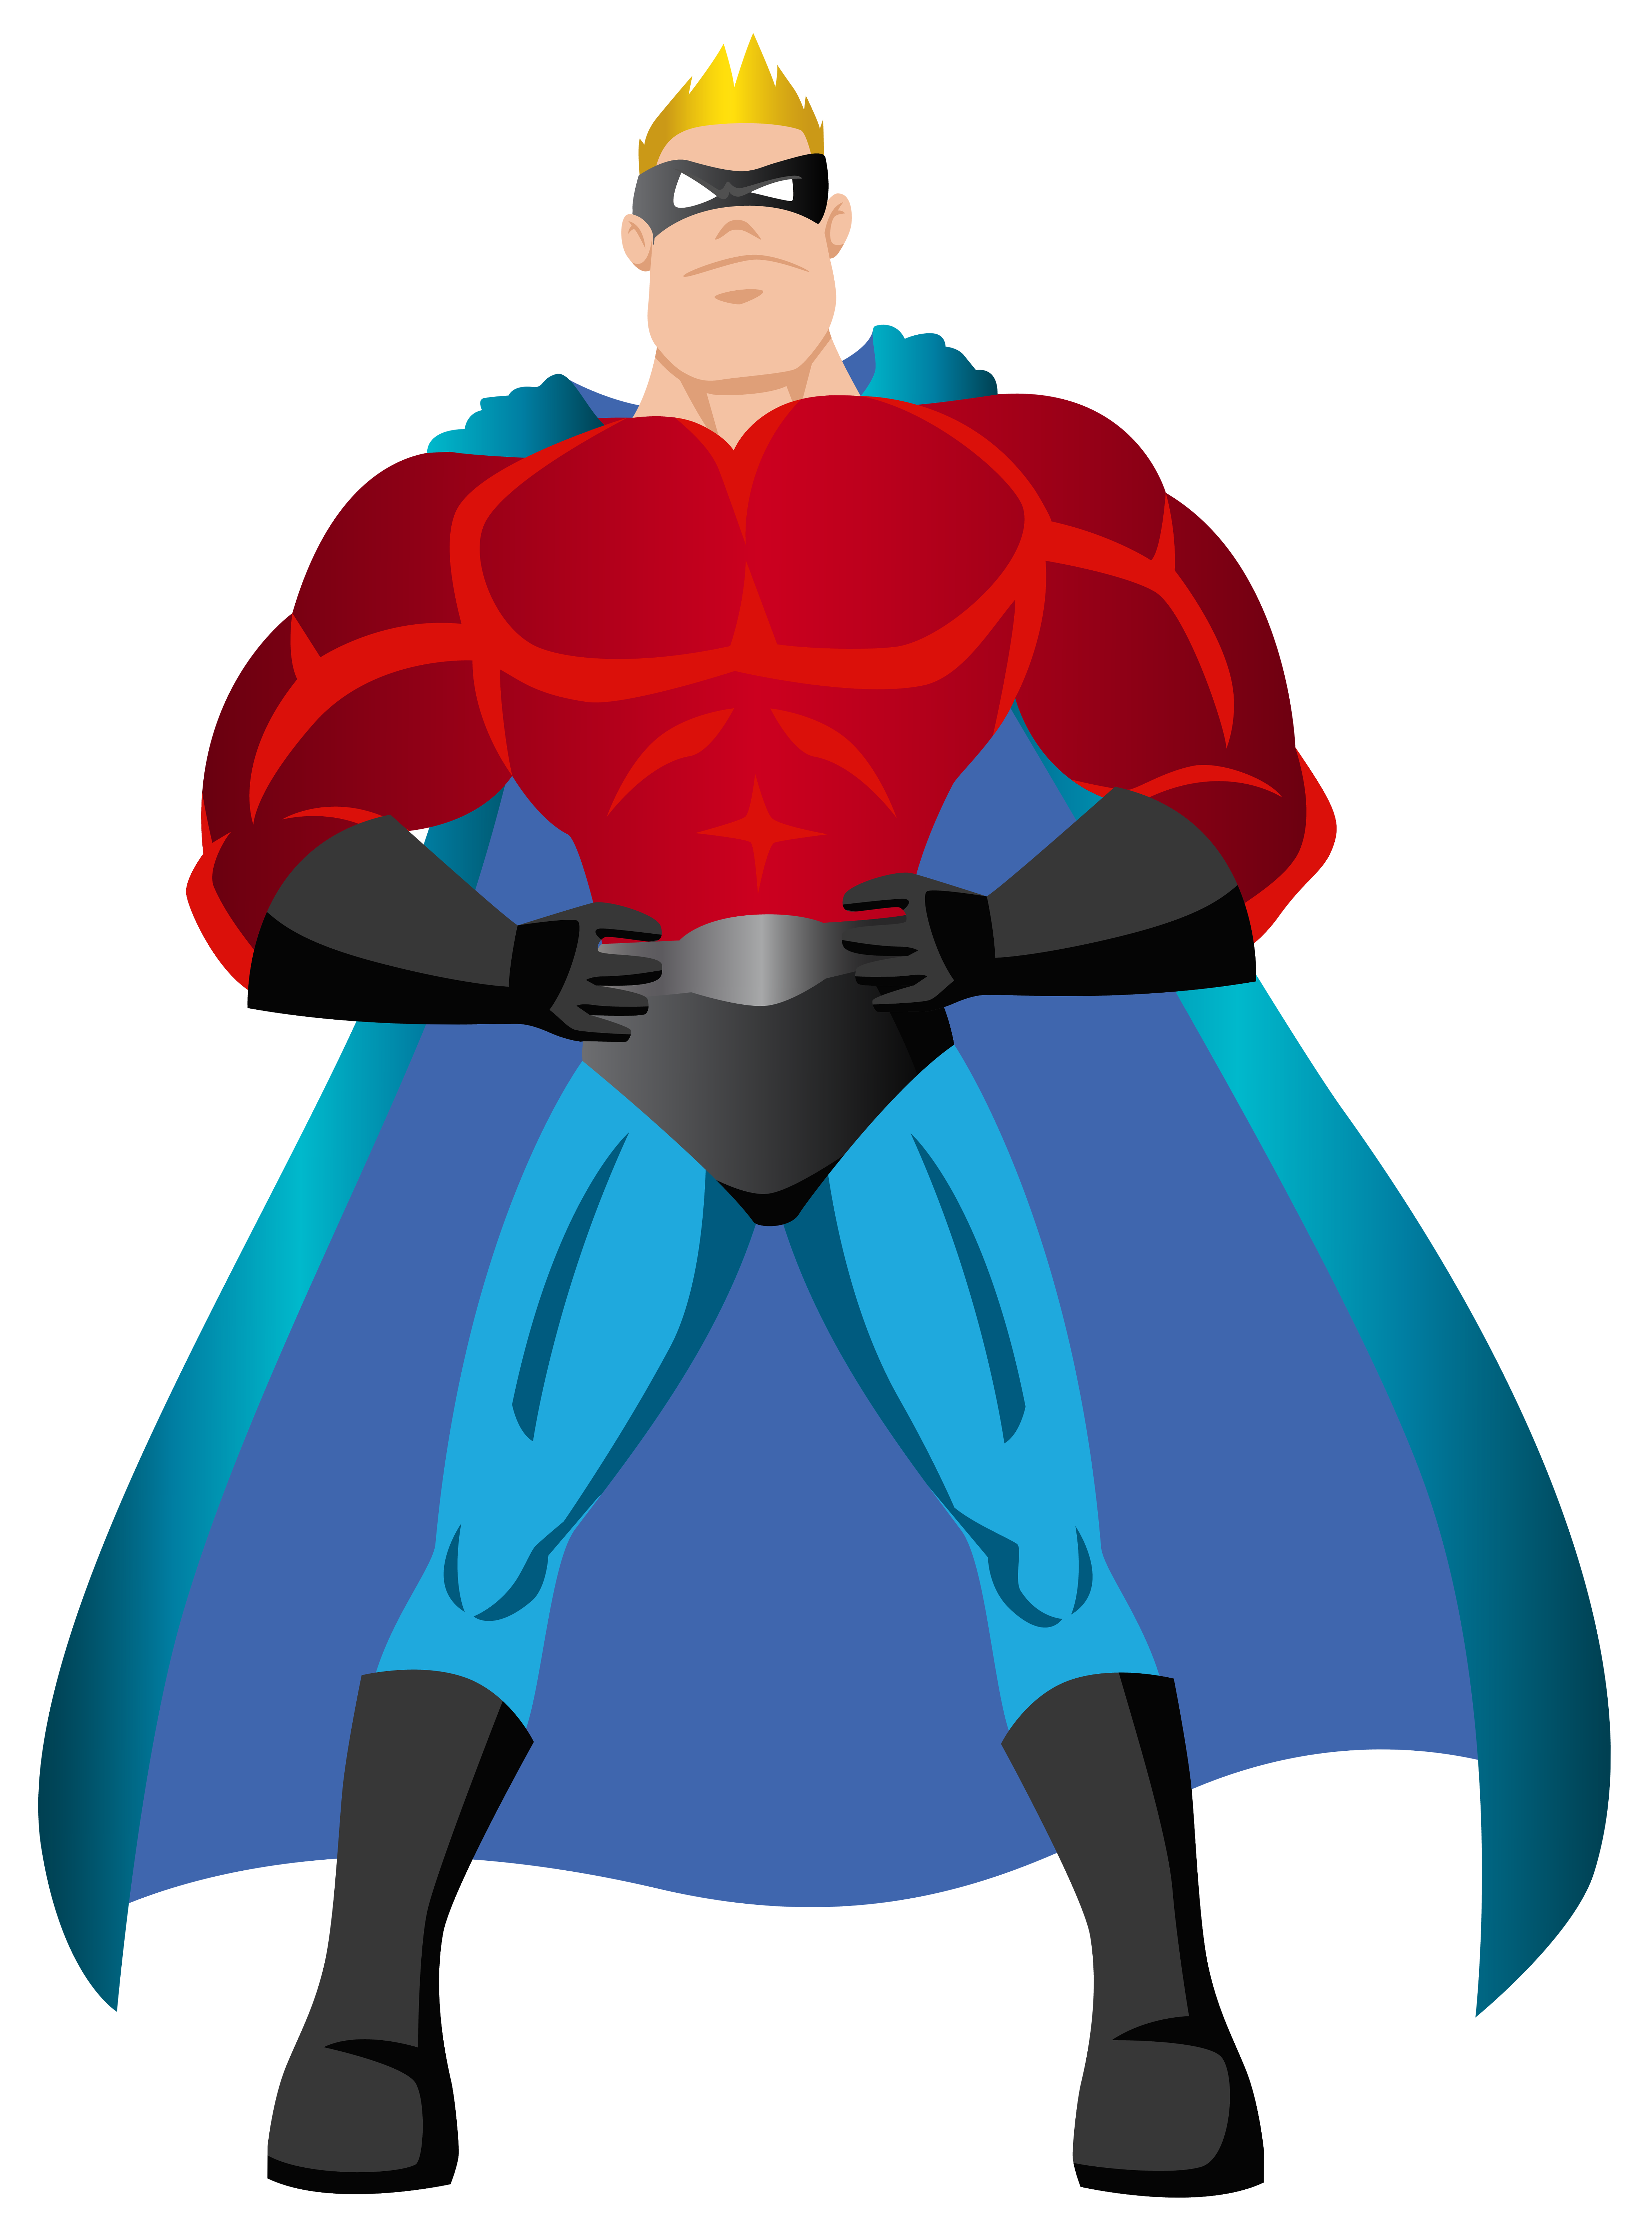 Apple outline with superman image clipart picture freeuse download Superman Clipart | jokingart.com Superman Clipart picture freeuse download